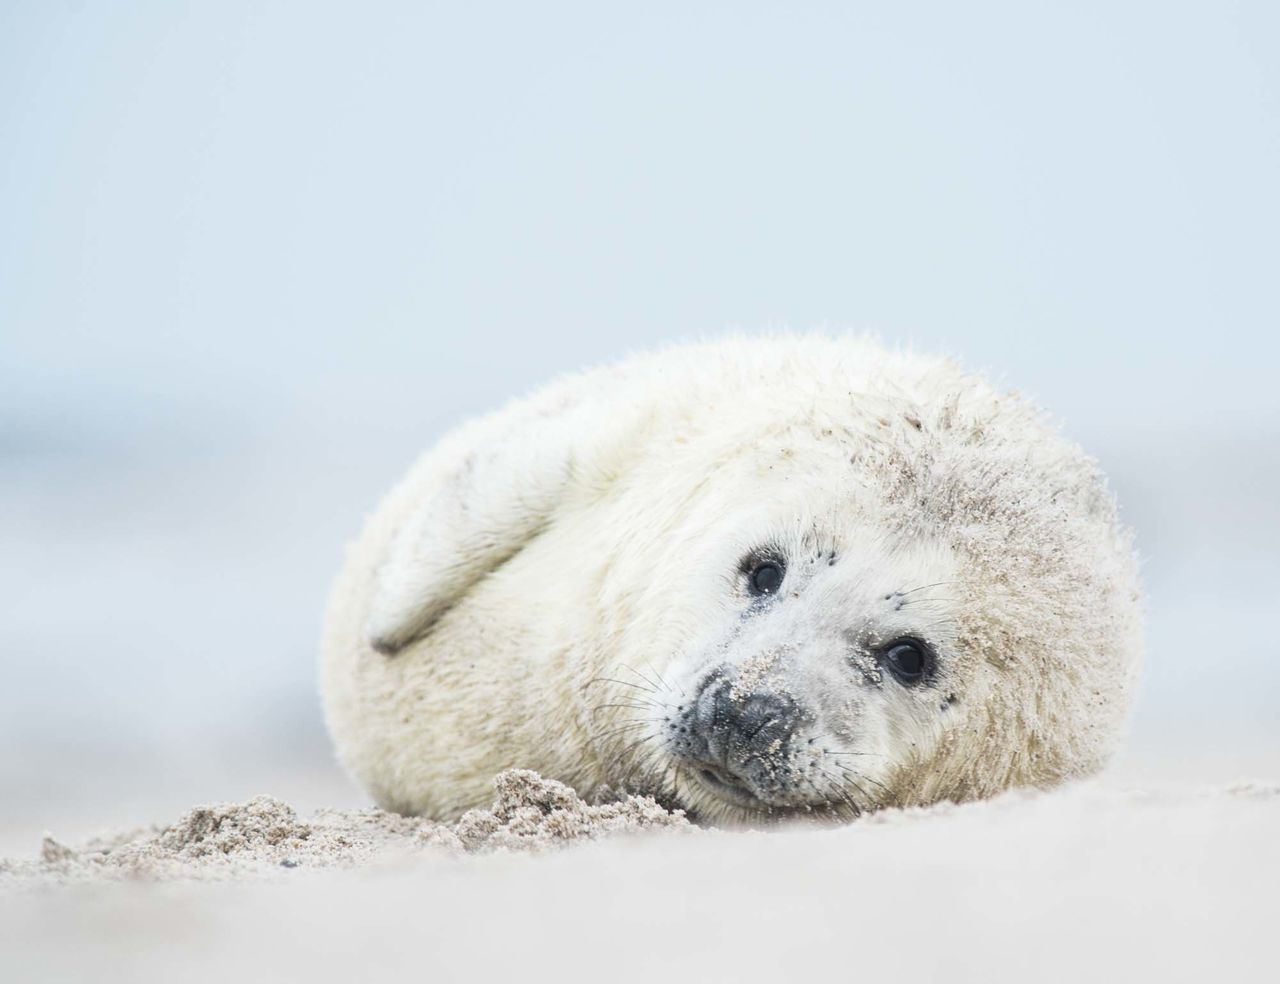 Baby seal Animal Themes Animal Wildlife Animals In The Wild Archival Baby Seal Close-up Cold Temperature Day Environment Mammal Nature No People Outdoors Polar Bear Sea Snow Softness White Background White Color Winter